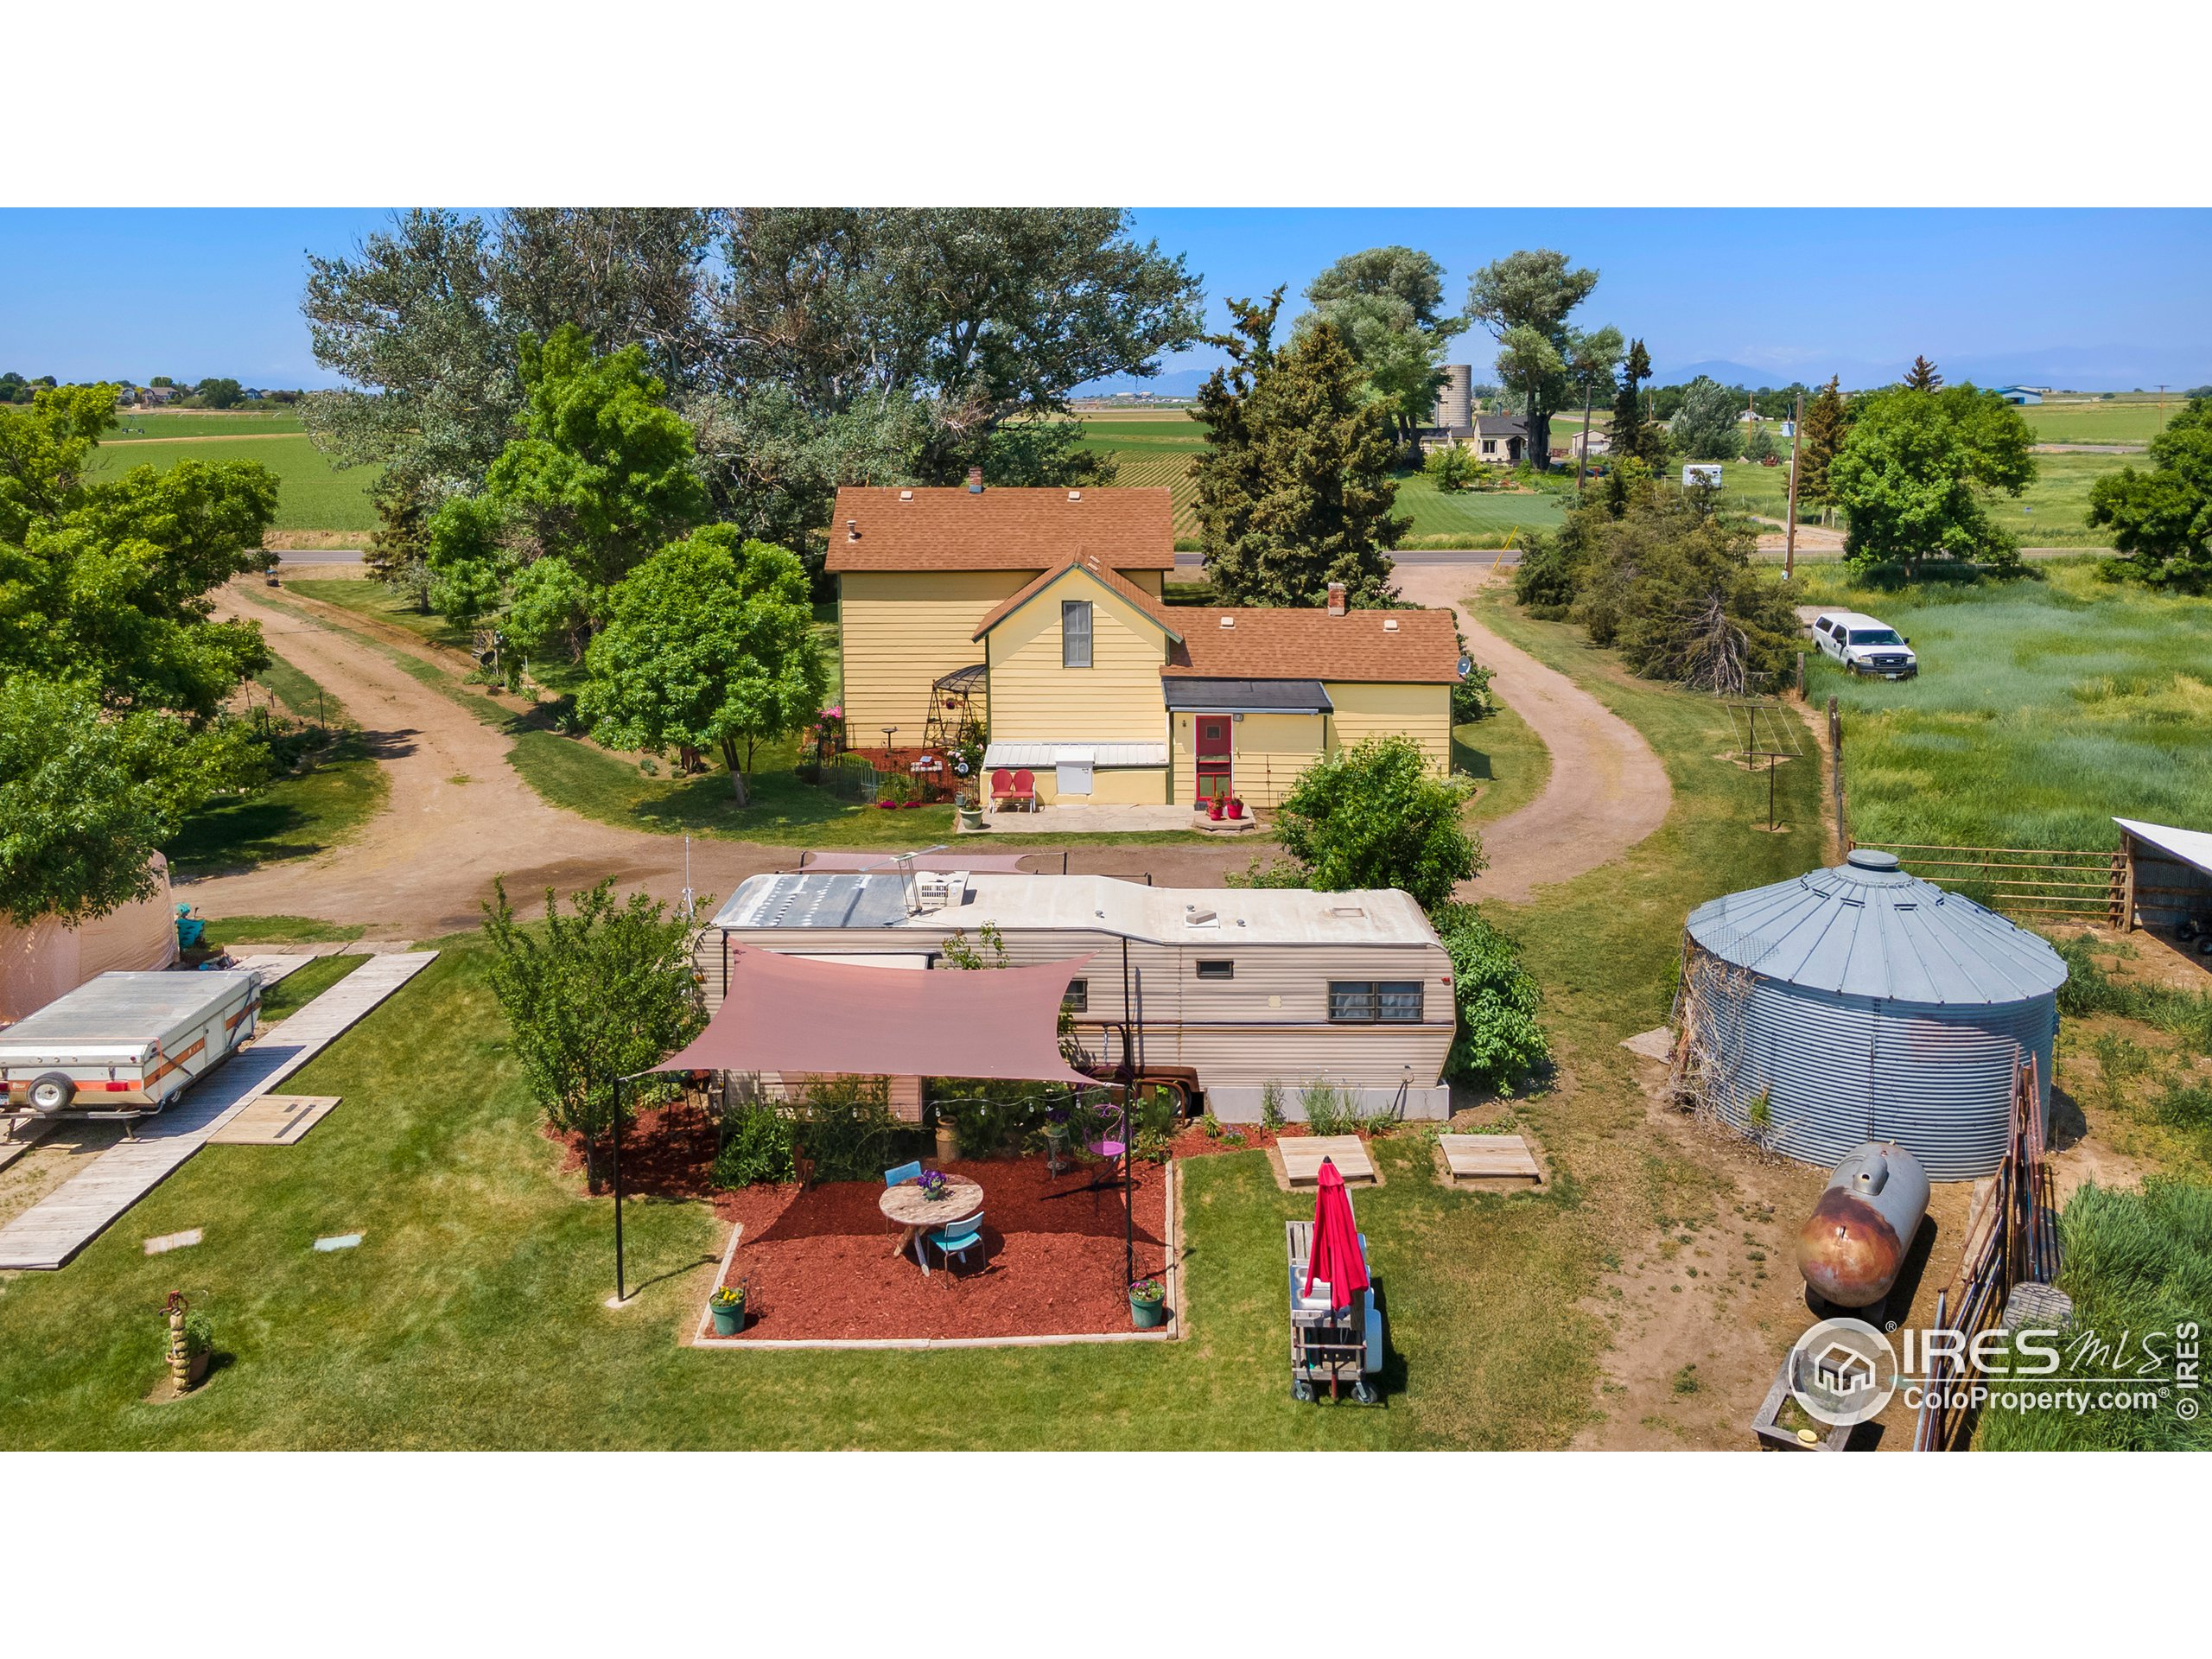 23898 County Road 13, Johnstown, CO 80534